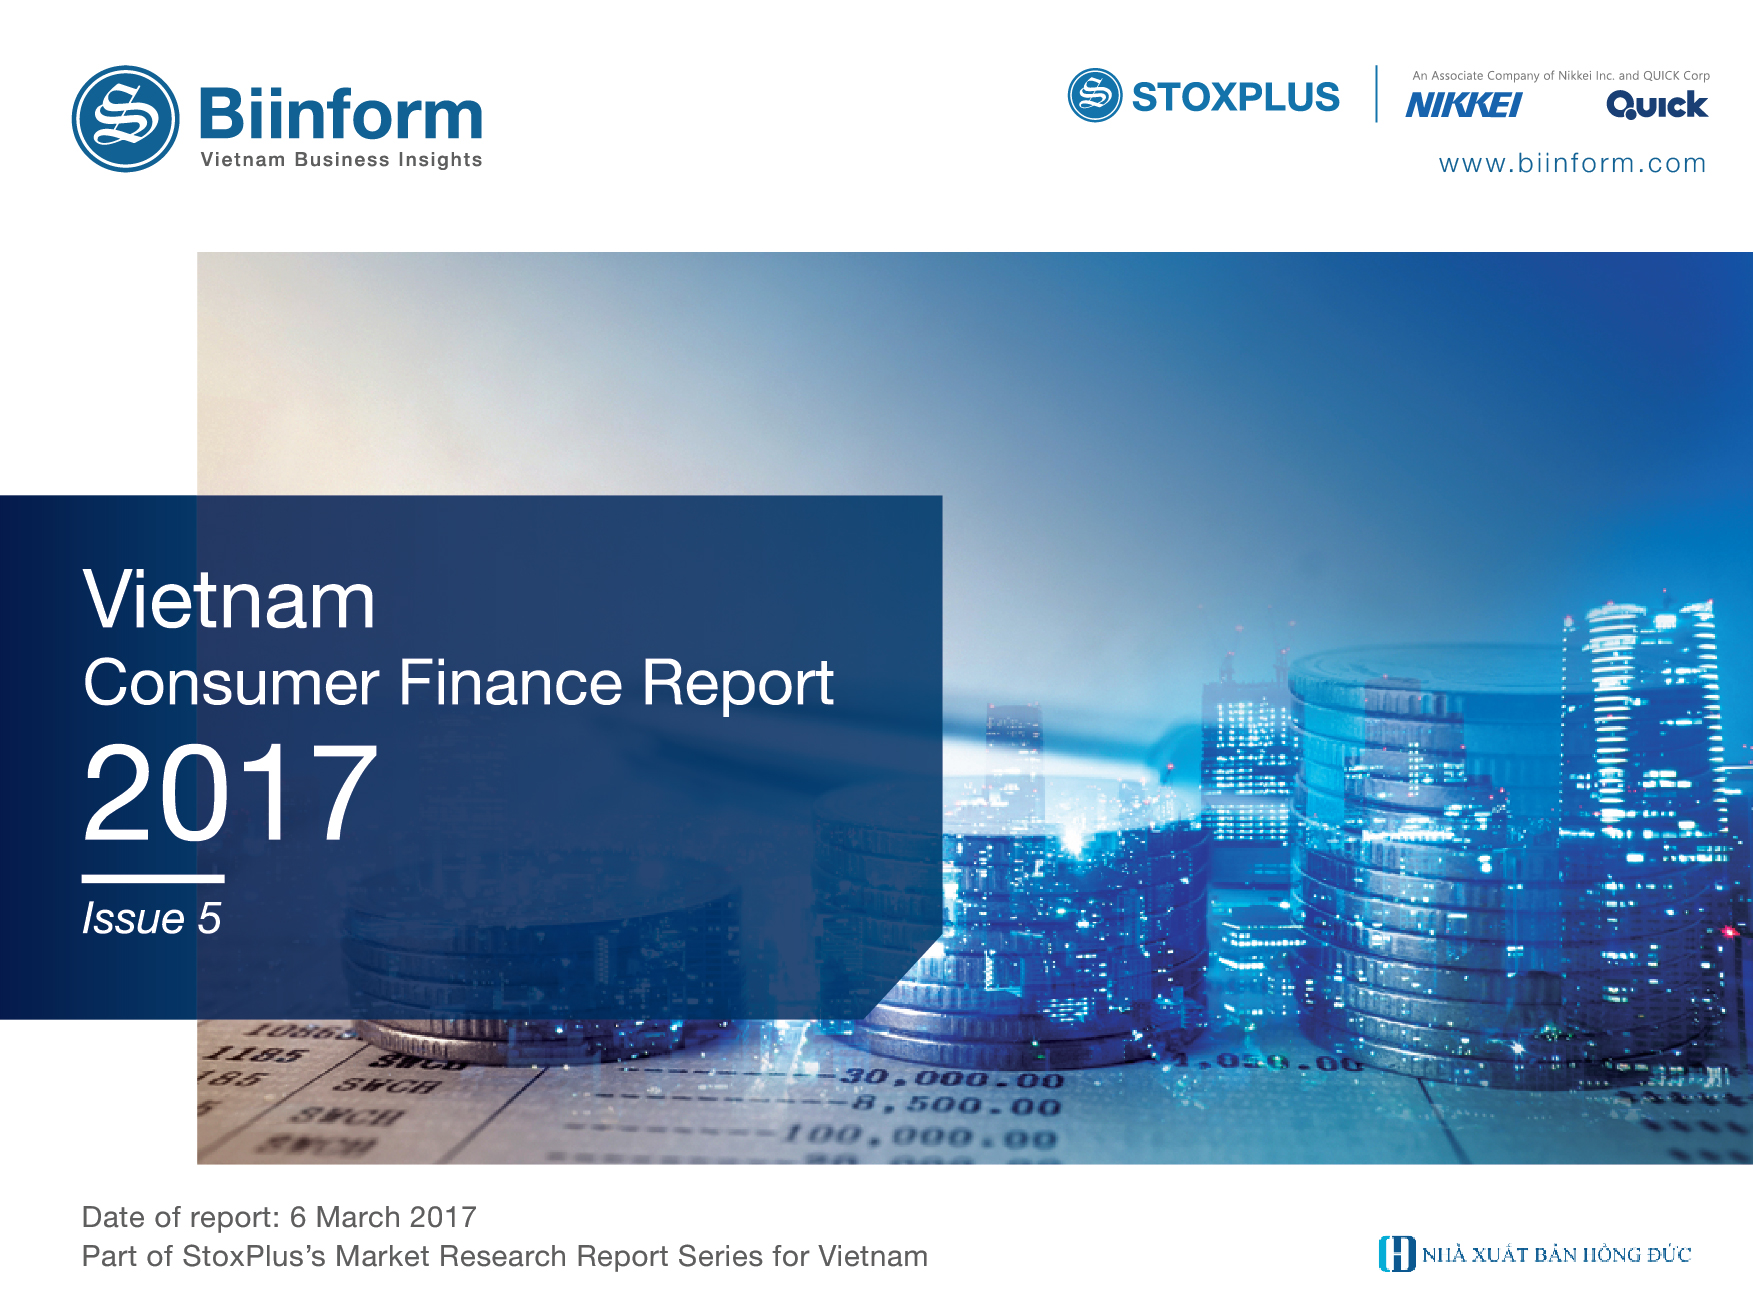 Vietnam Consumer Finance Market Report 2017